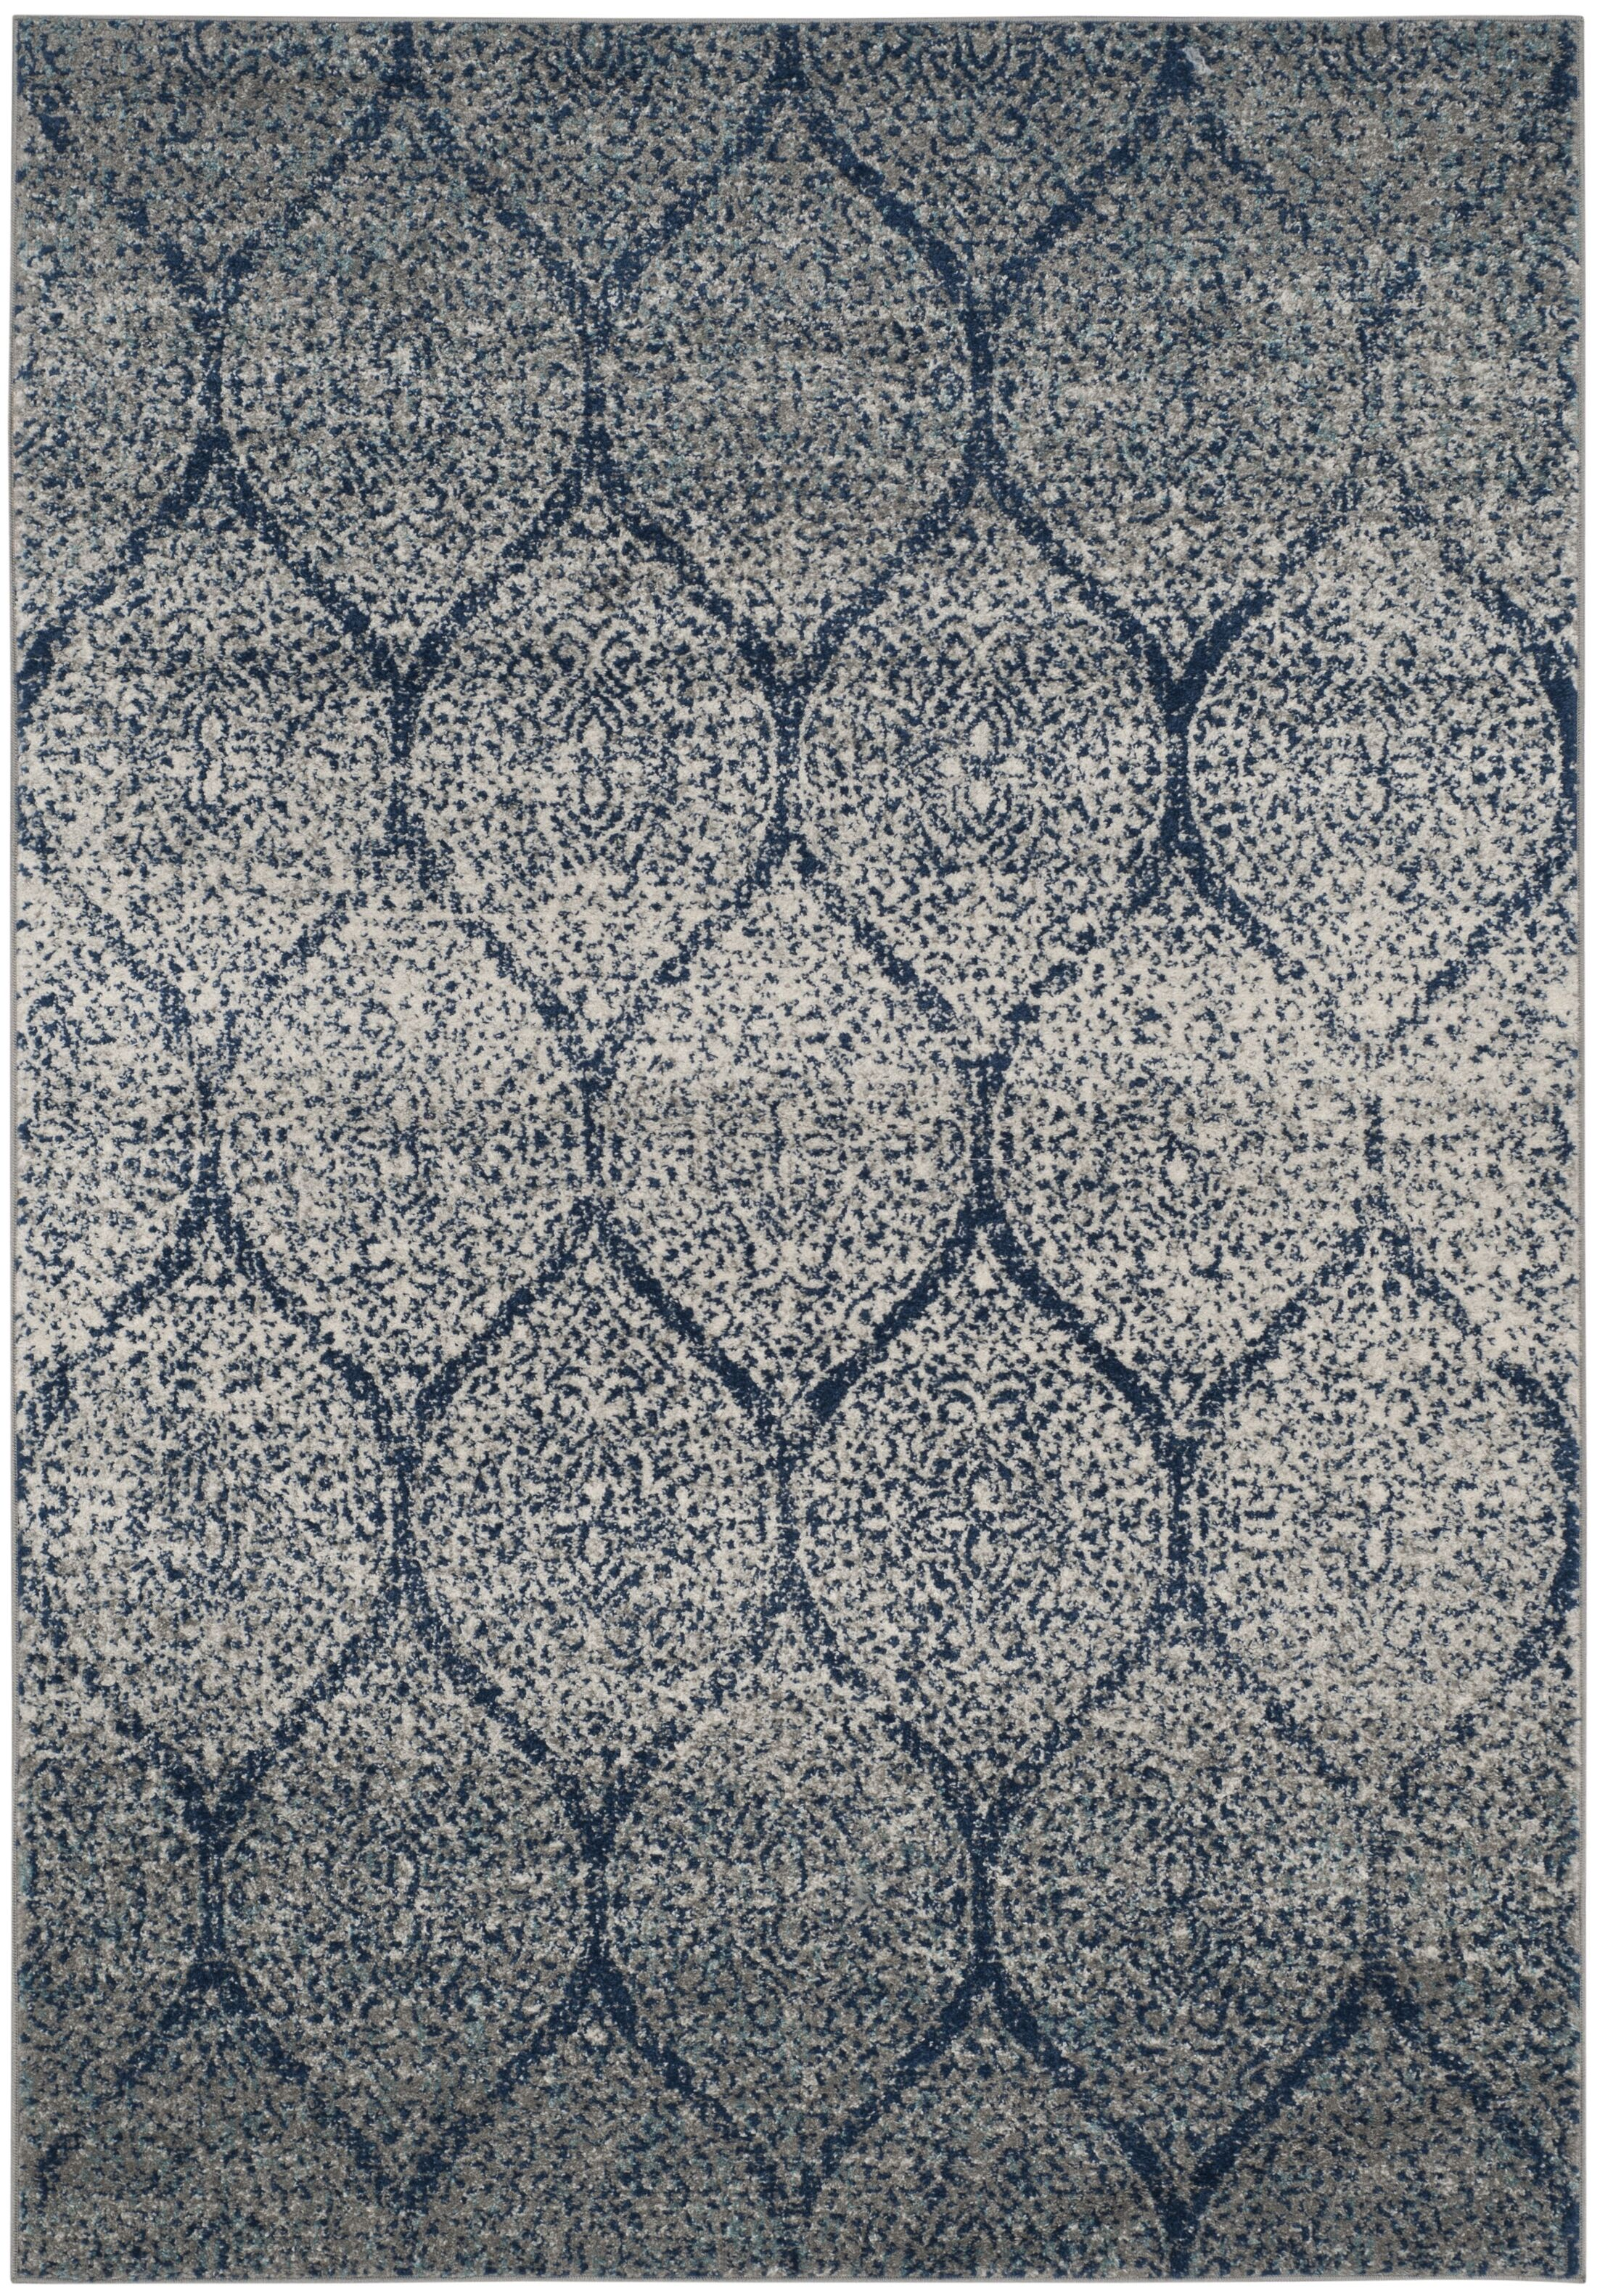 Grieve Blue/Gray Area Rug Rug Size: Rectangle 5'1